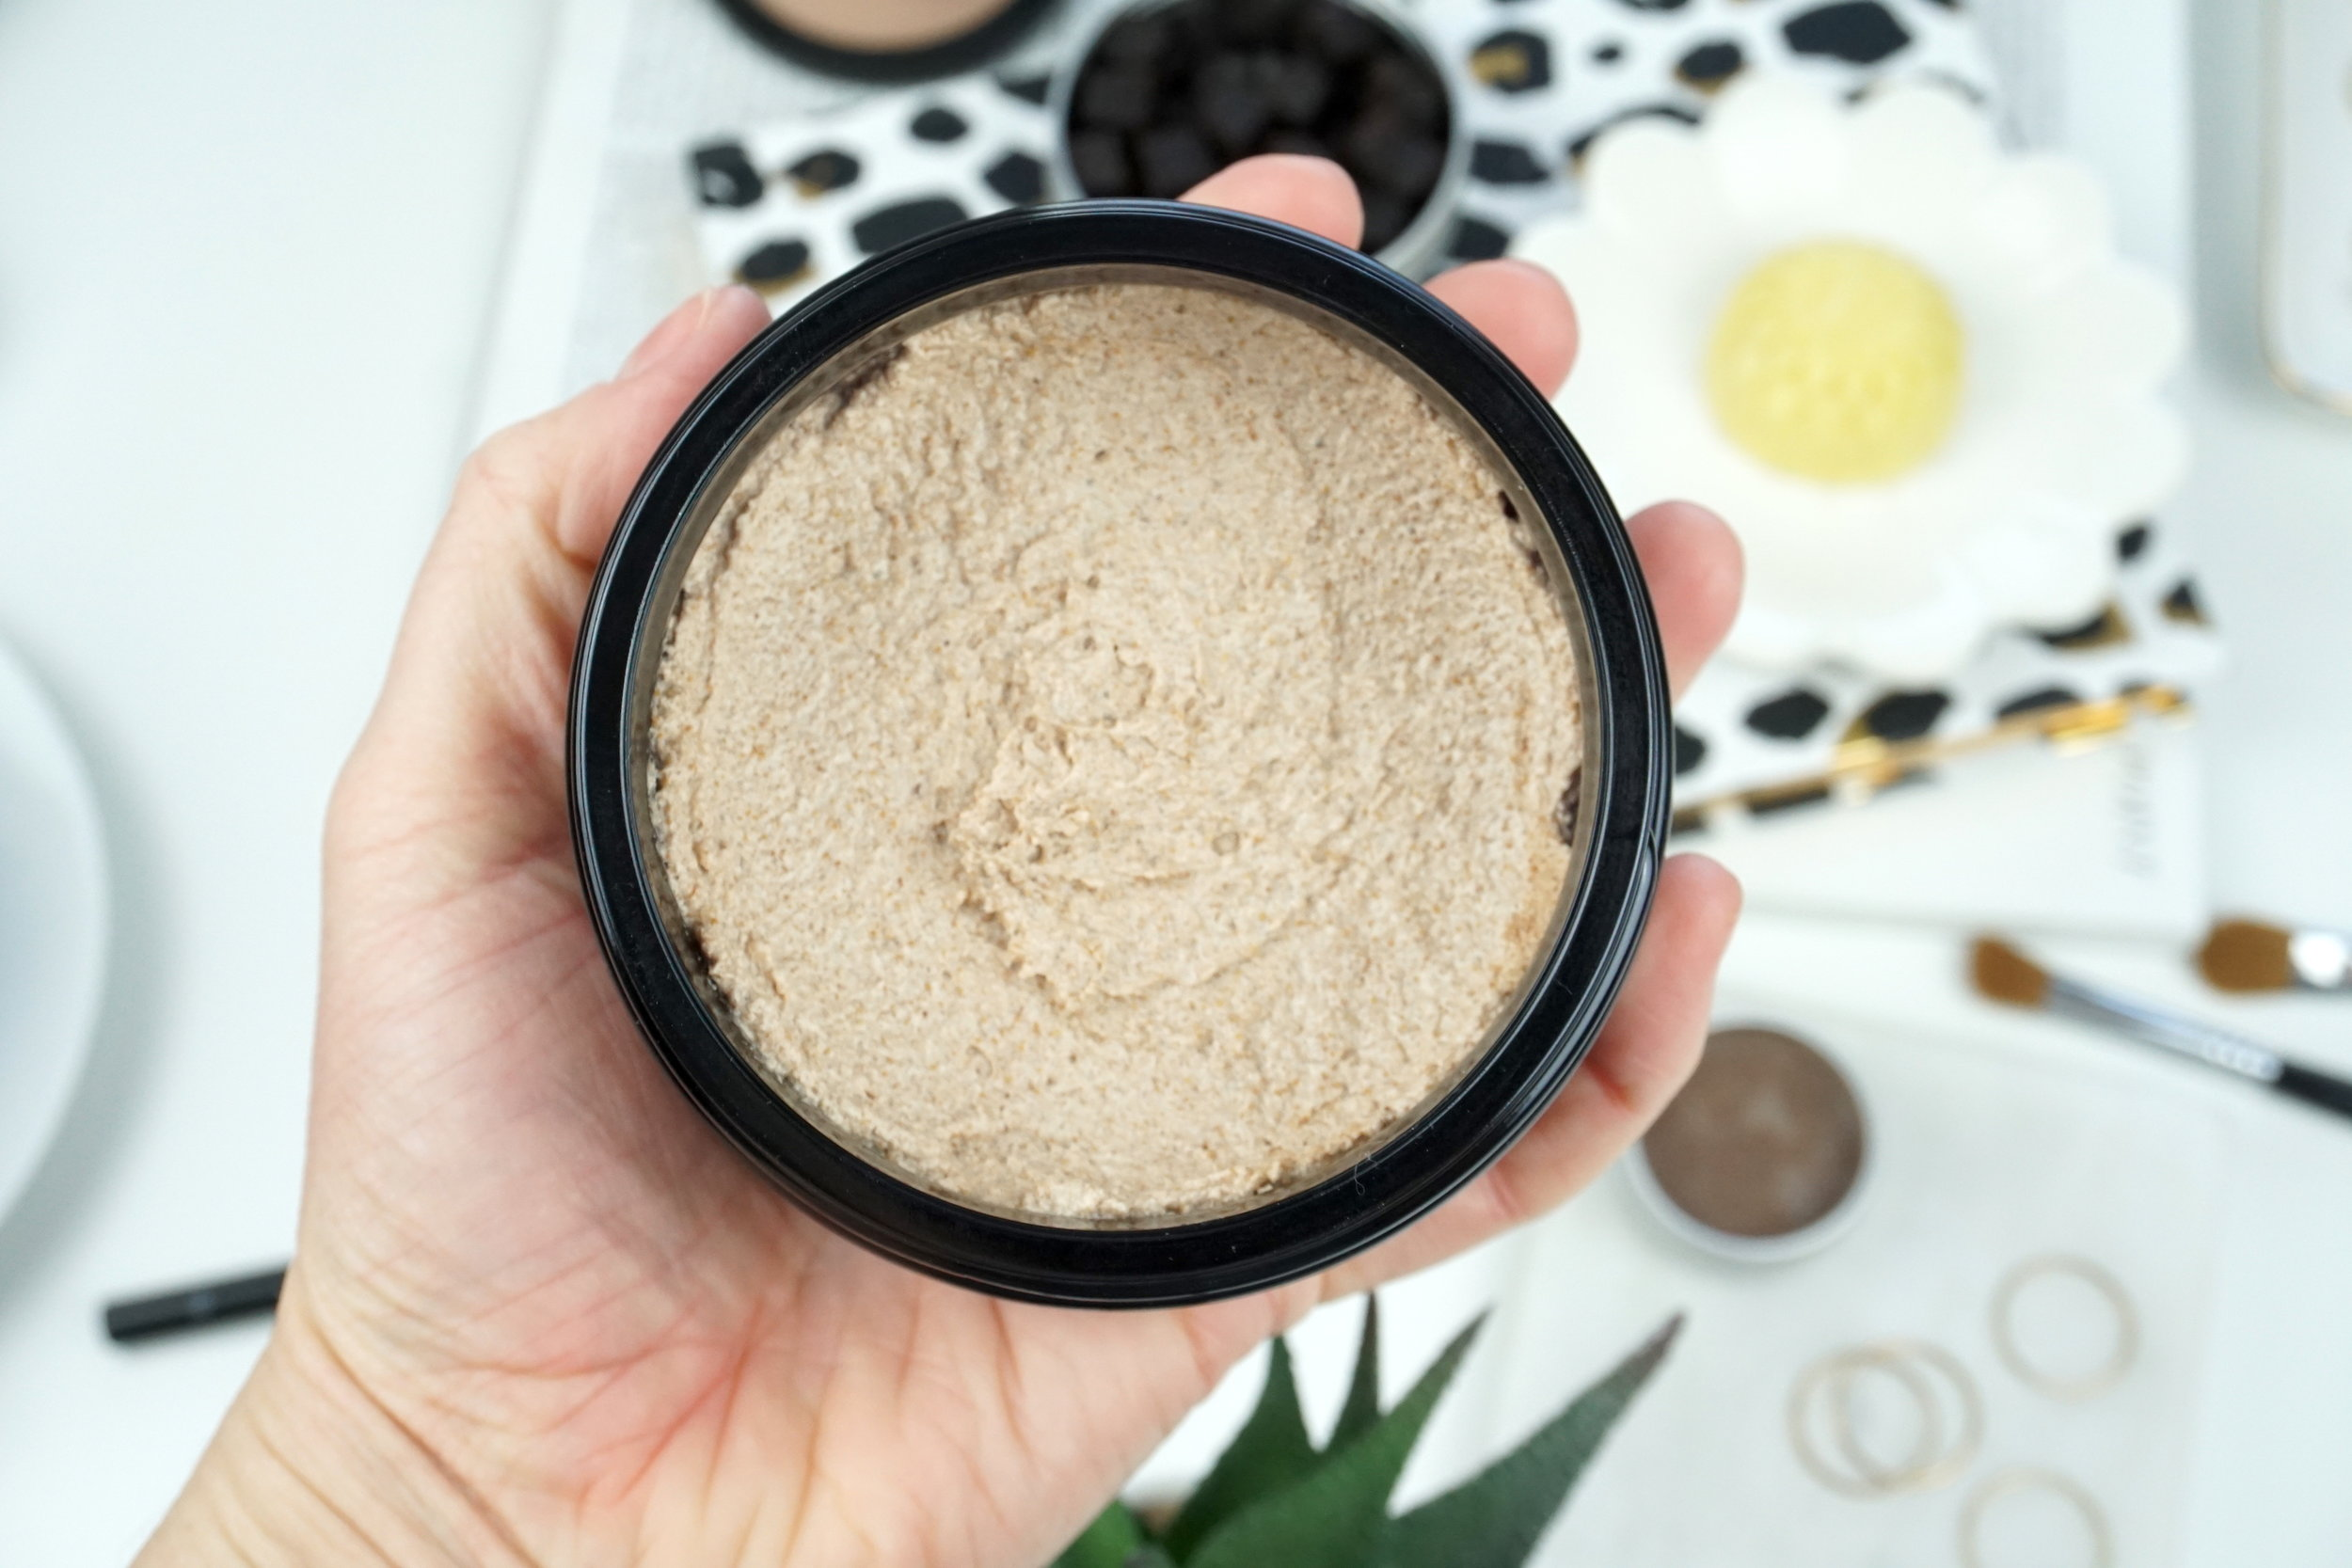 Skin Alchemists - The Gorgeous Soldier Cocoa Body Scrub